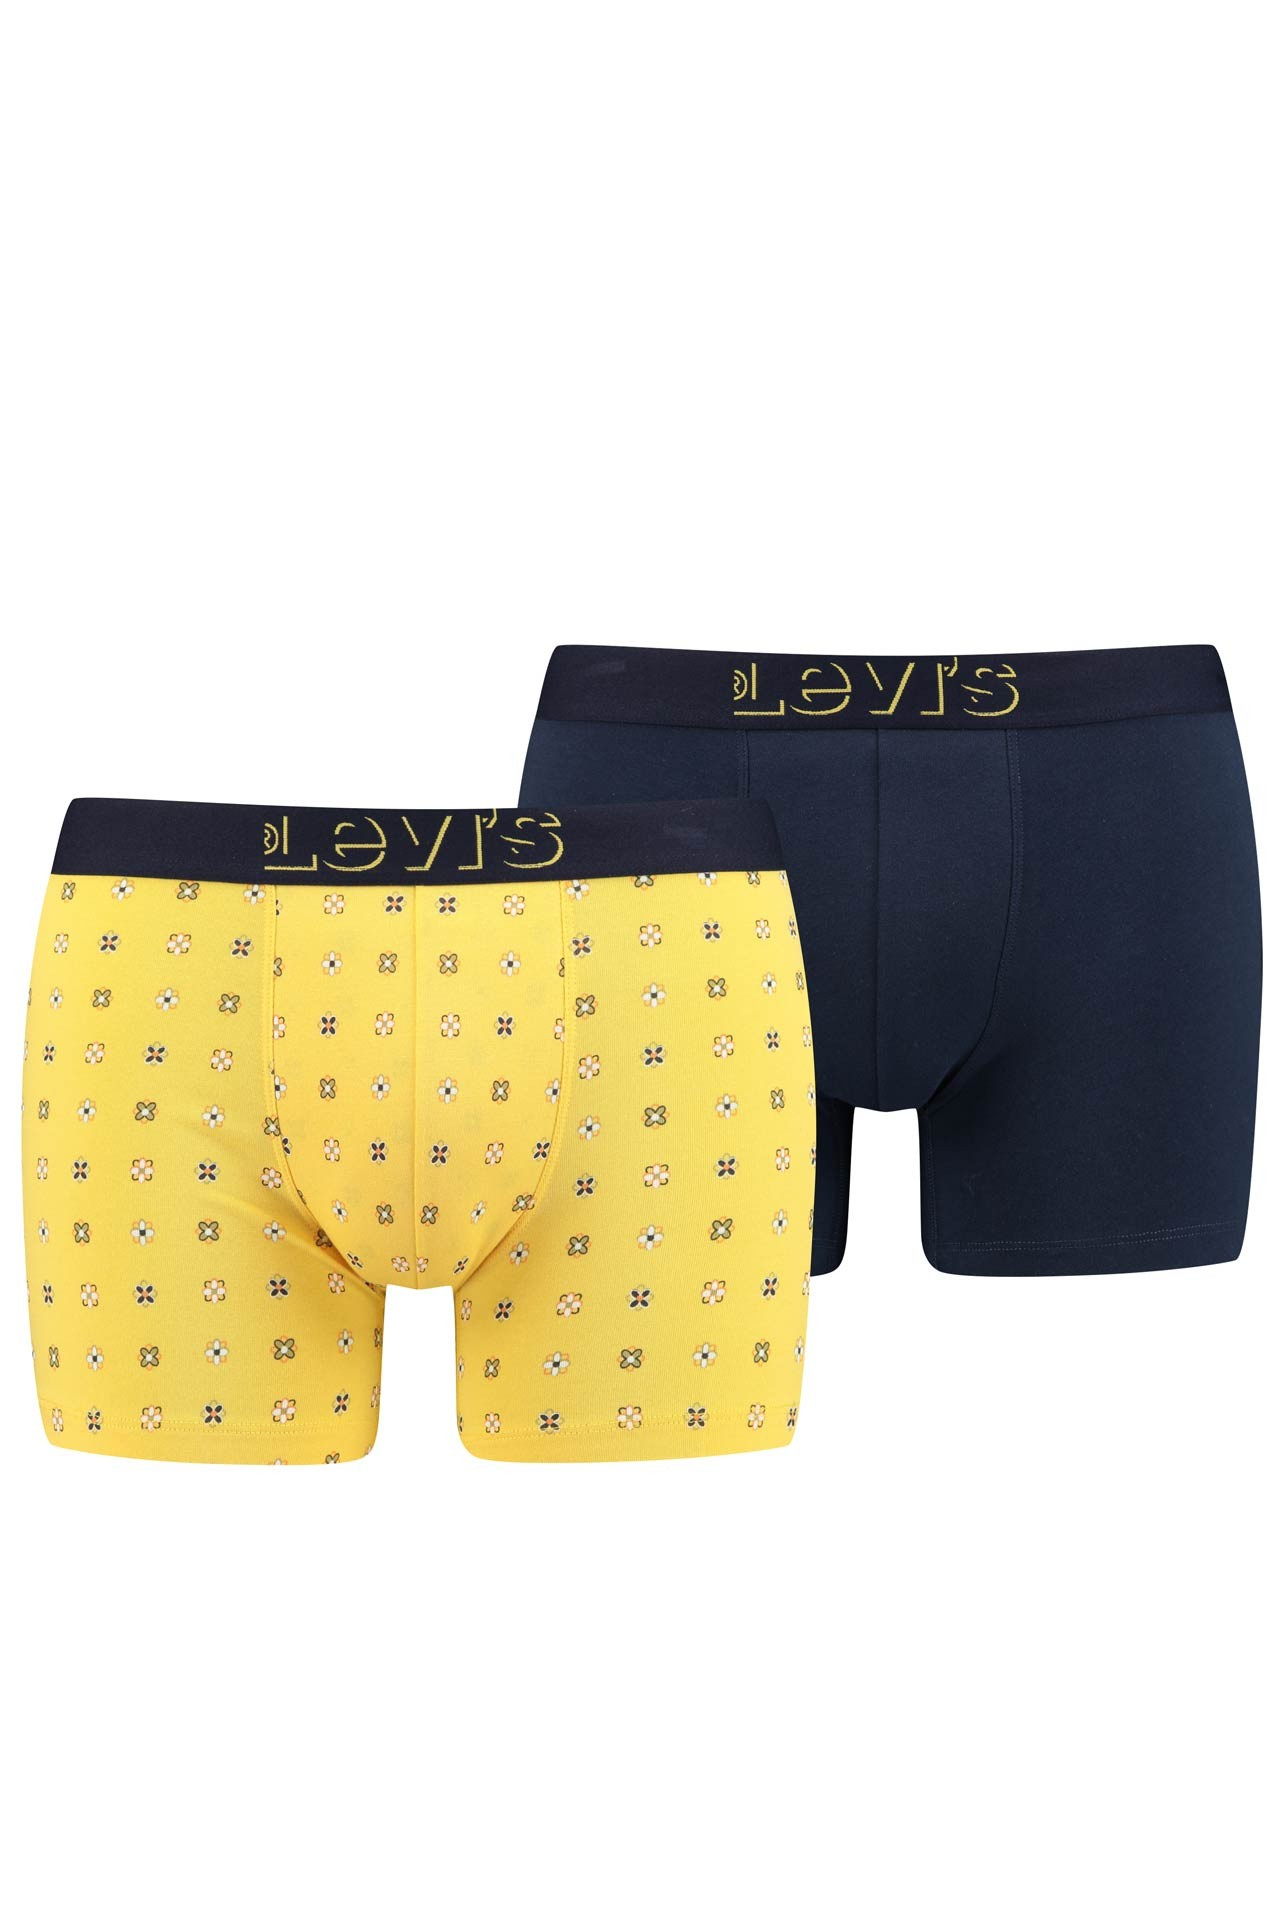 Afbeelding van Levi's Bodywear Boxershort Levis Men Mini Icon Aop Boxer Brief 2P Yellow 905032001